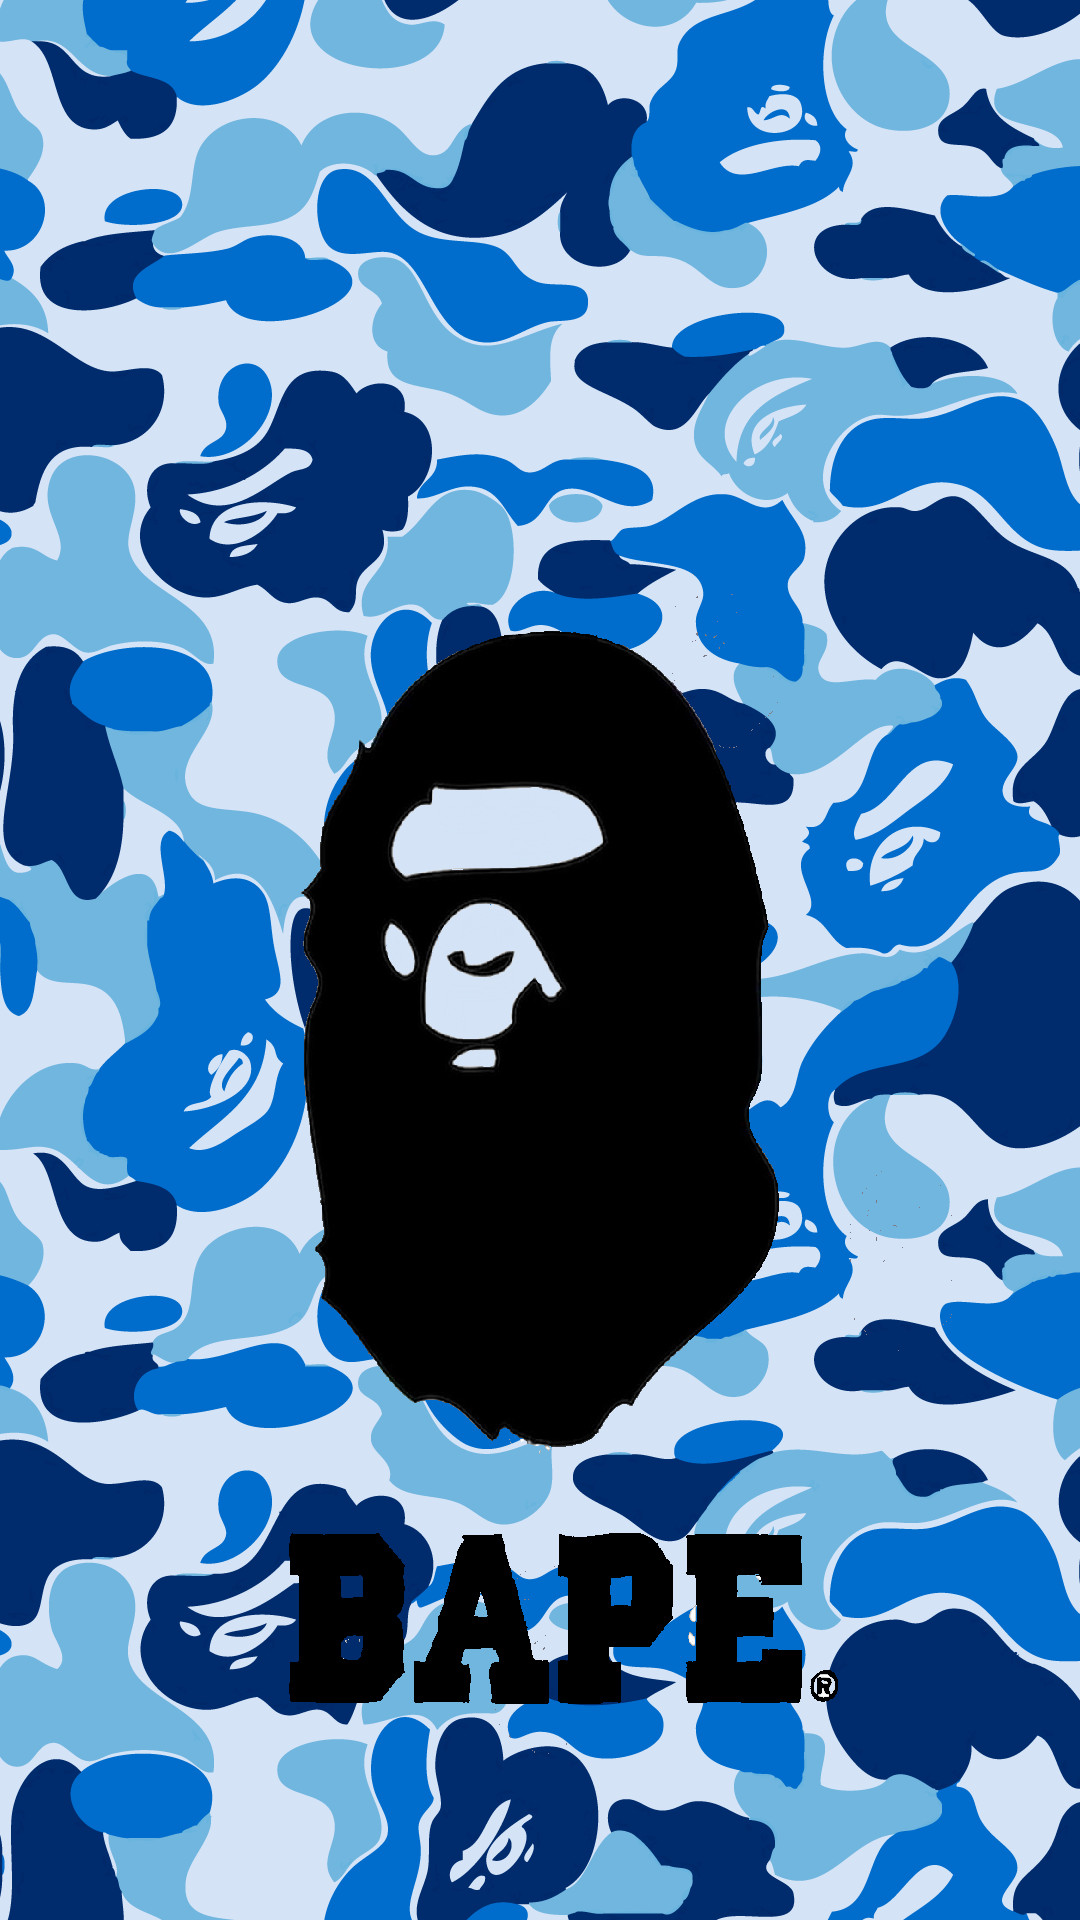 Res: 1080x1920, Pin by Aaron Martinez on lit stuff | Pinterest | Bape wallpaper iphone, Bape  and Wallpaper downloads